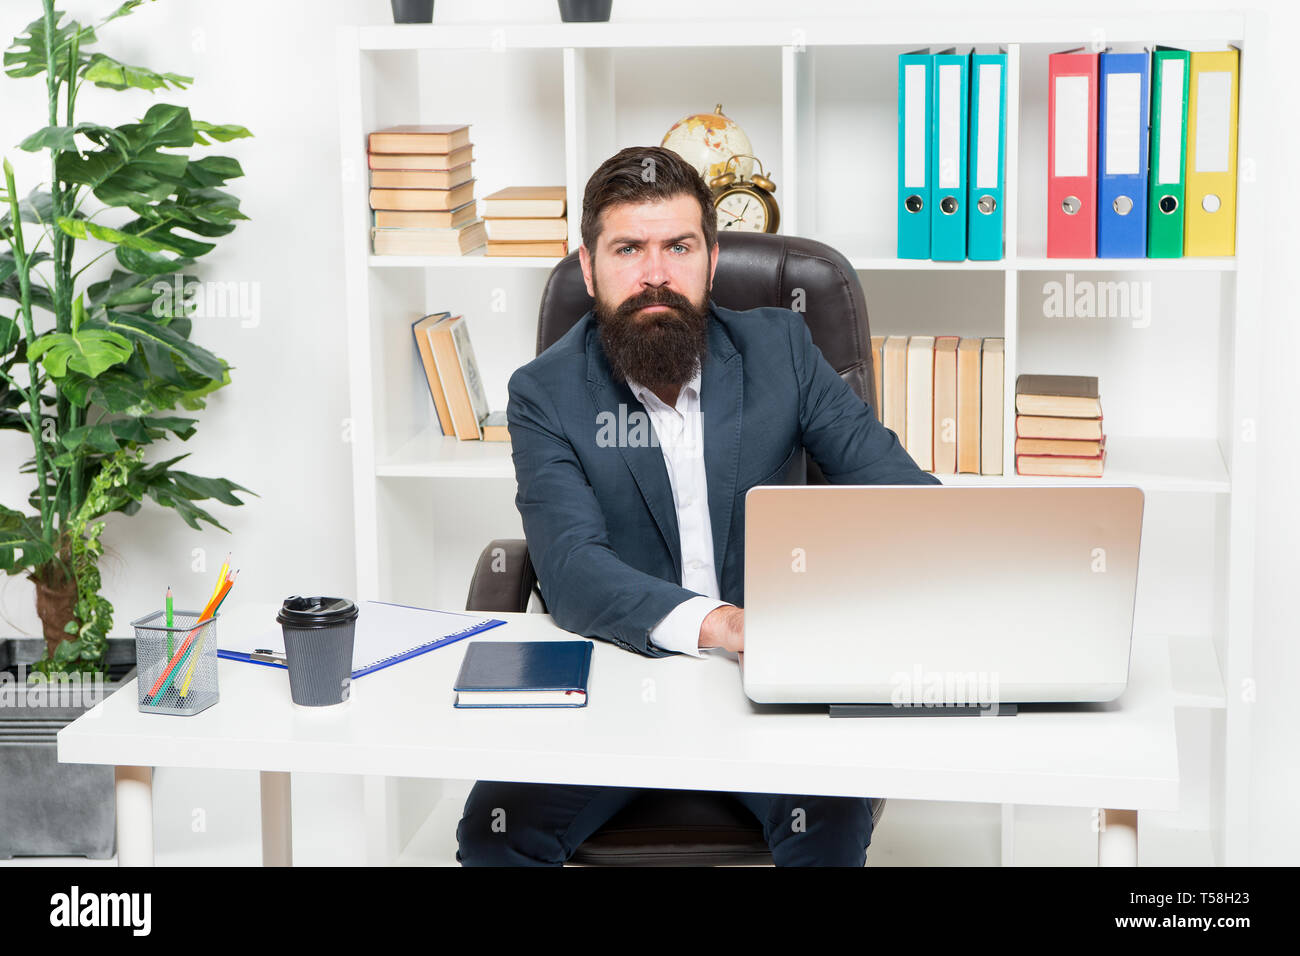 Office staff concept. Office routine. Businessman in charge of business solutions. Developing business strategy. Risky business. Man bearded boss sit with laptop. Manager solving business problems. - Stock Image